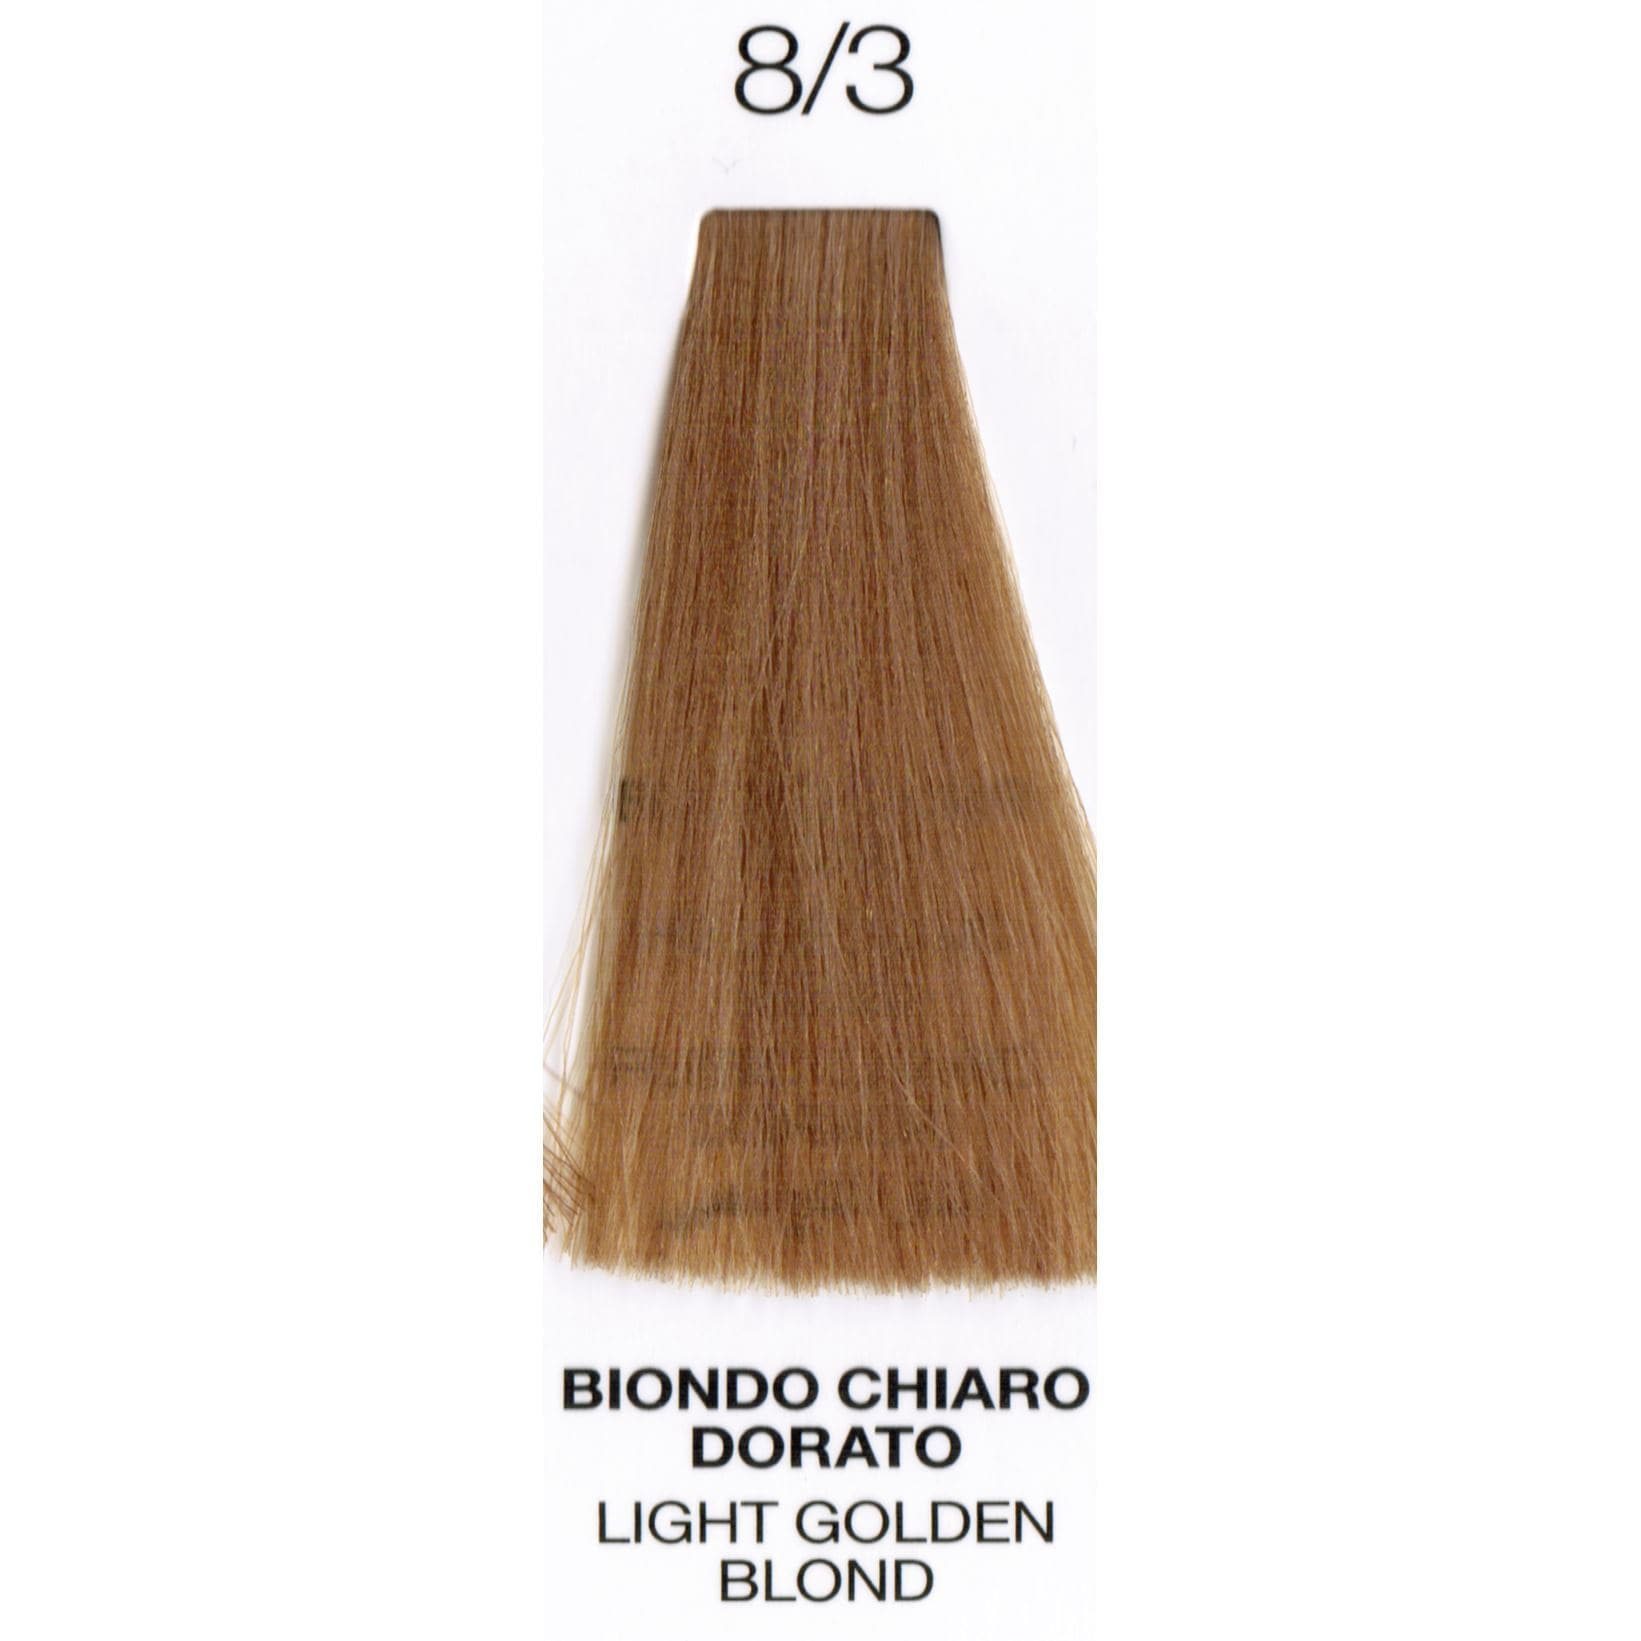 8/3 Light Golden Blonde | Purity | Ammonia-Free Permanent Hair Color | OYSTER | SHSalons.com